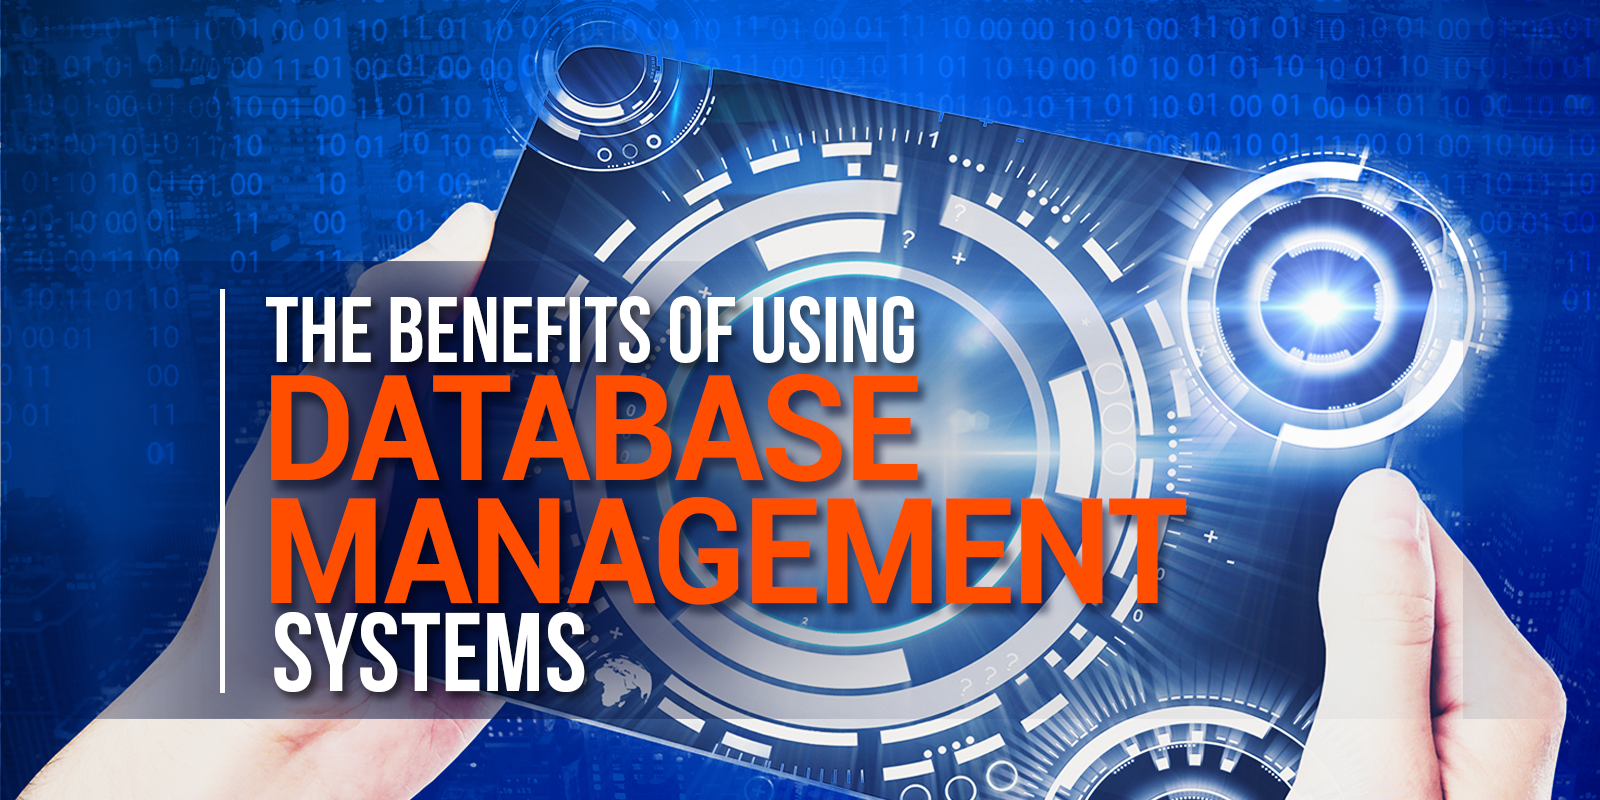 The Benefits Of Using Database Management Systems